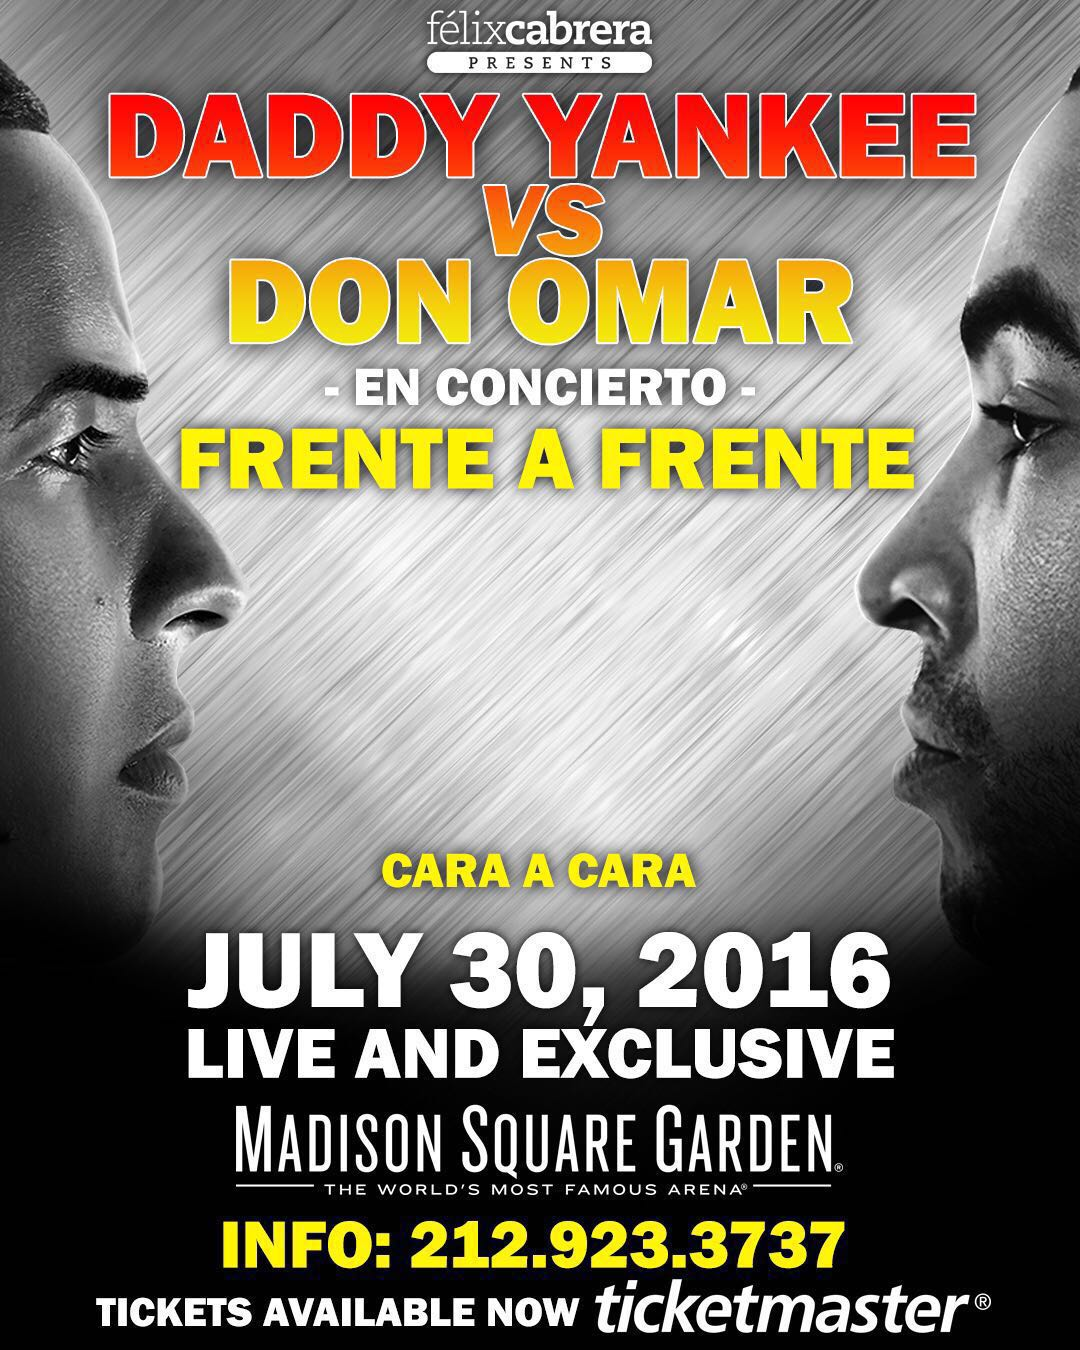 DADDY YANKEE VS DON OMAR